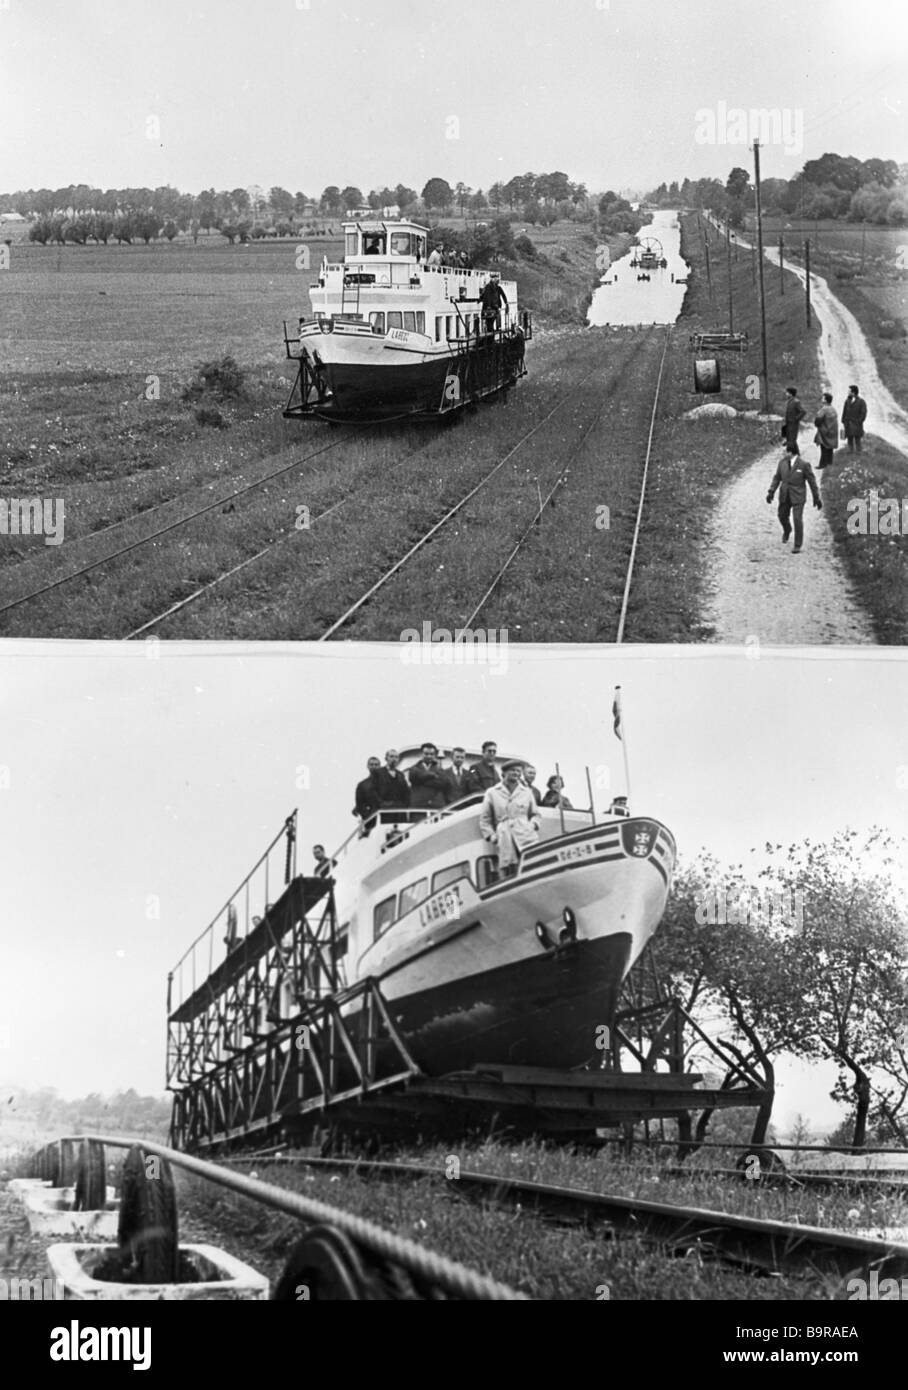 A launch being lifted on rail tracks Tourists traveling along the Warminski Canal cover part of the route overland - Stock Image